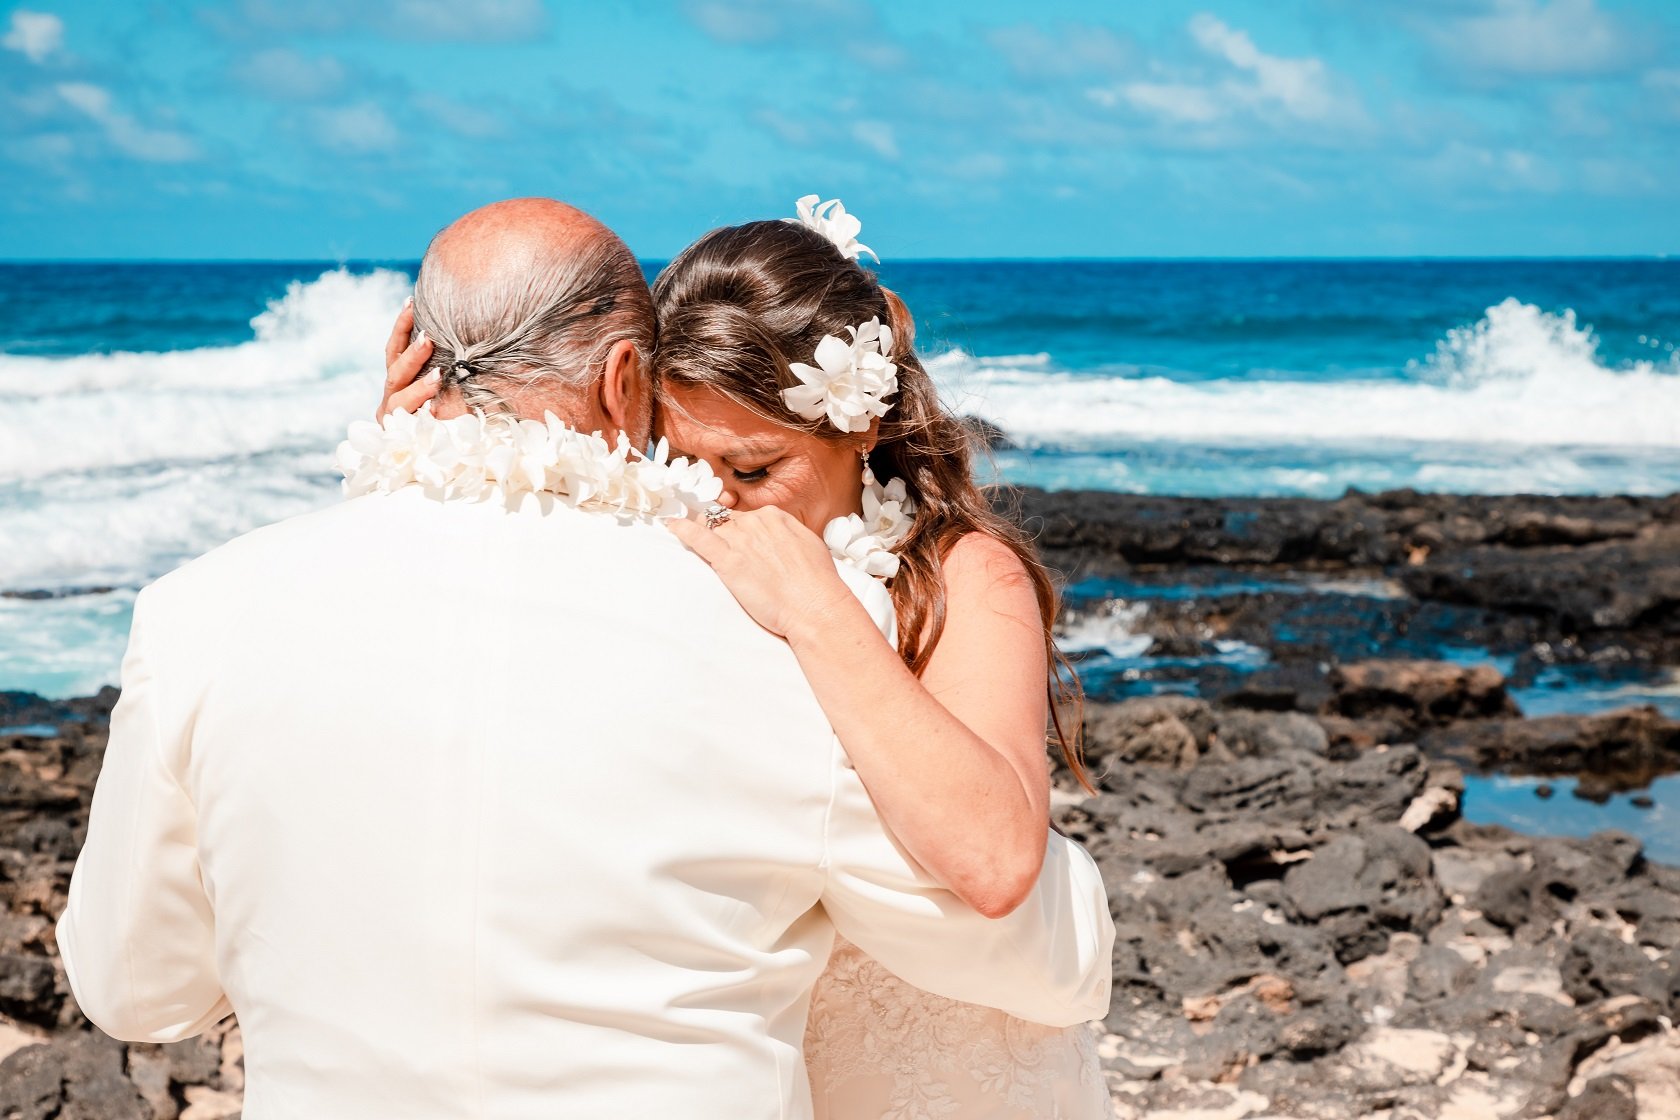 crying bride groom oahu wedding elopement ceremony on beach